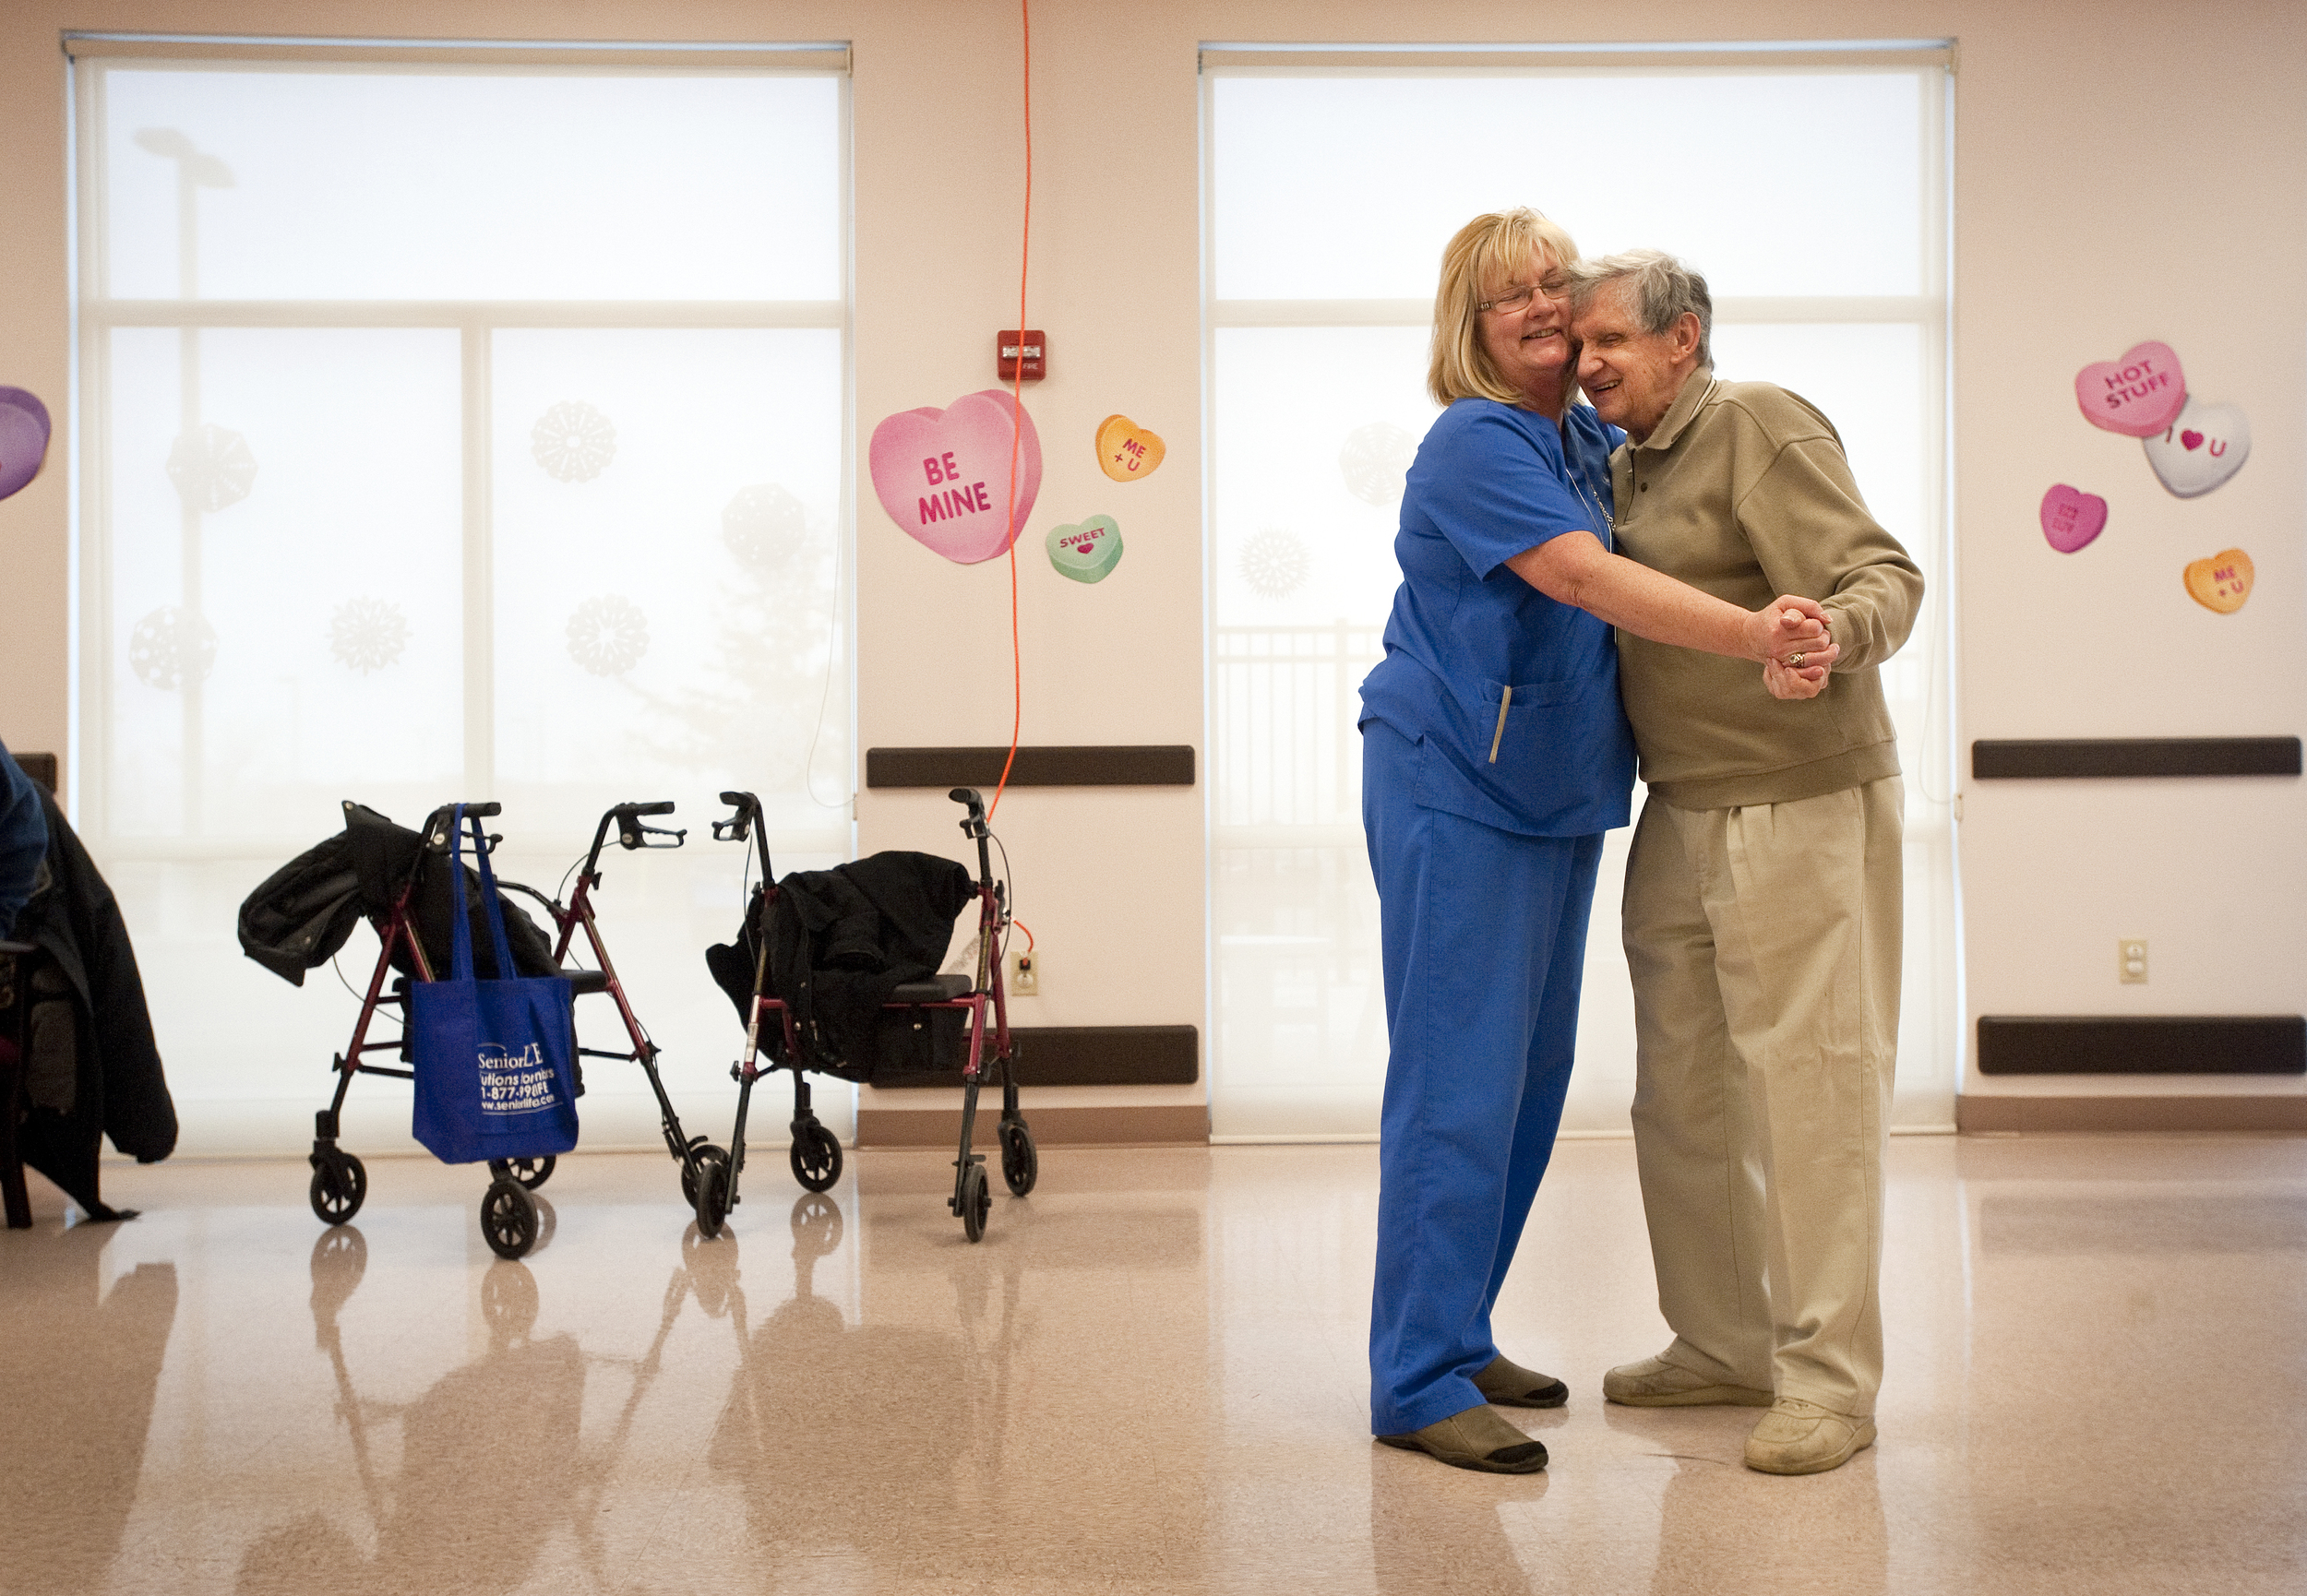 """Sal Mignogna, 75, of Greensburg pulls Marsha Kirker-Bozich close to him as they dance during a Valentine's Ball on Thursday, February 12, 2015 at Senior LIFE in Greensburg. """"I've never seen him so happy,"""" said Kirker-Bozich, the activities coordinator. """"He remembers jitter-bugging with his girlfriend."""""""